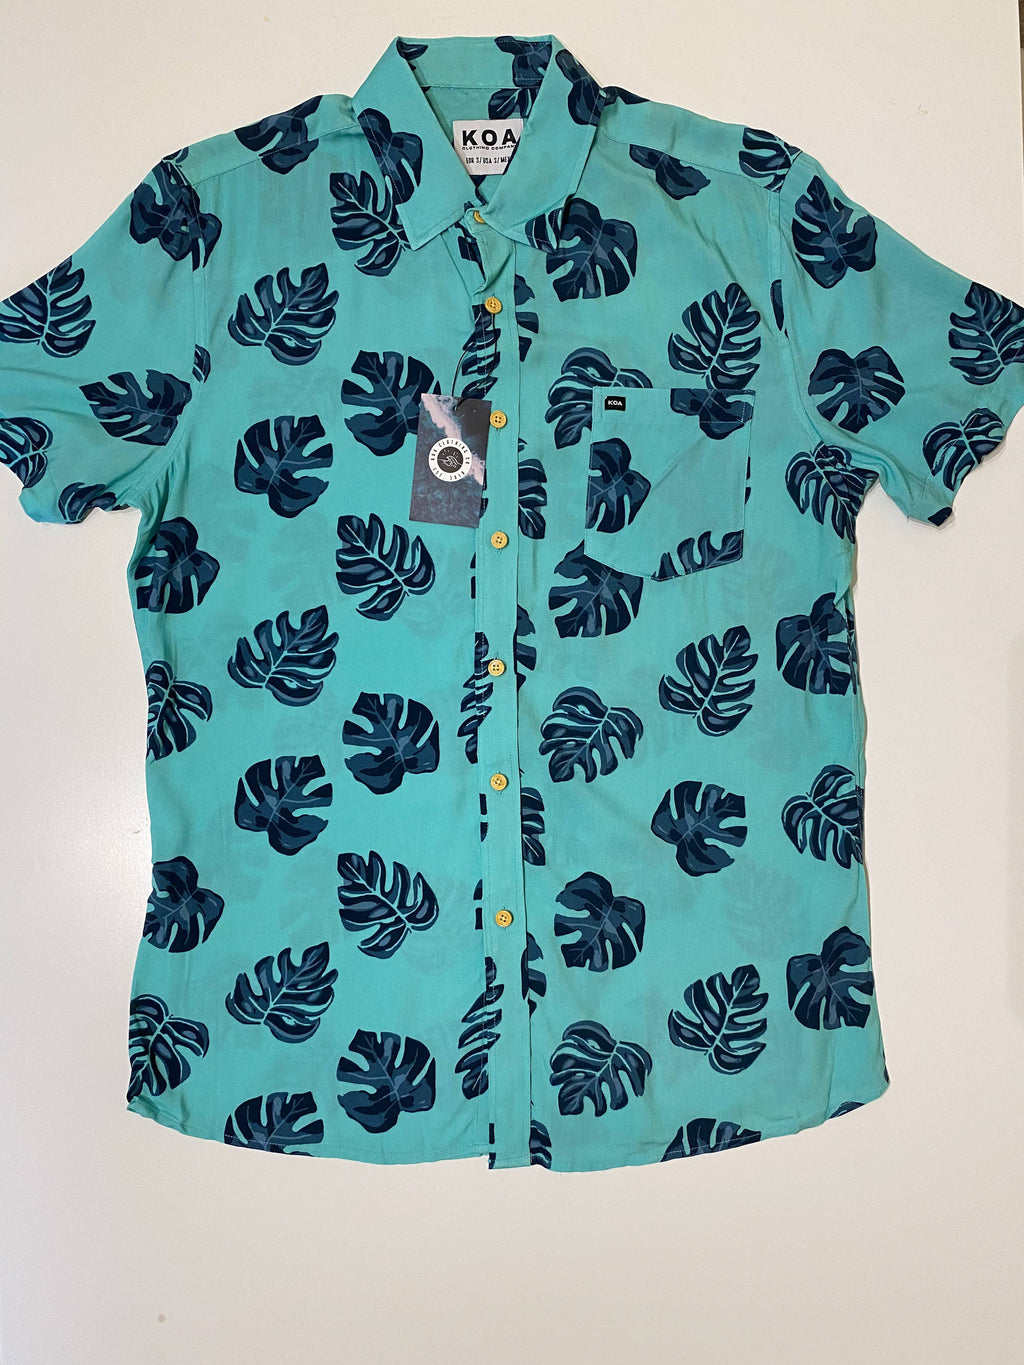 KOA Clothing Company - Monstera Shirt